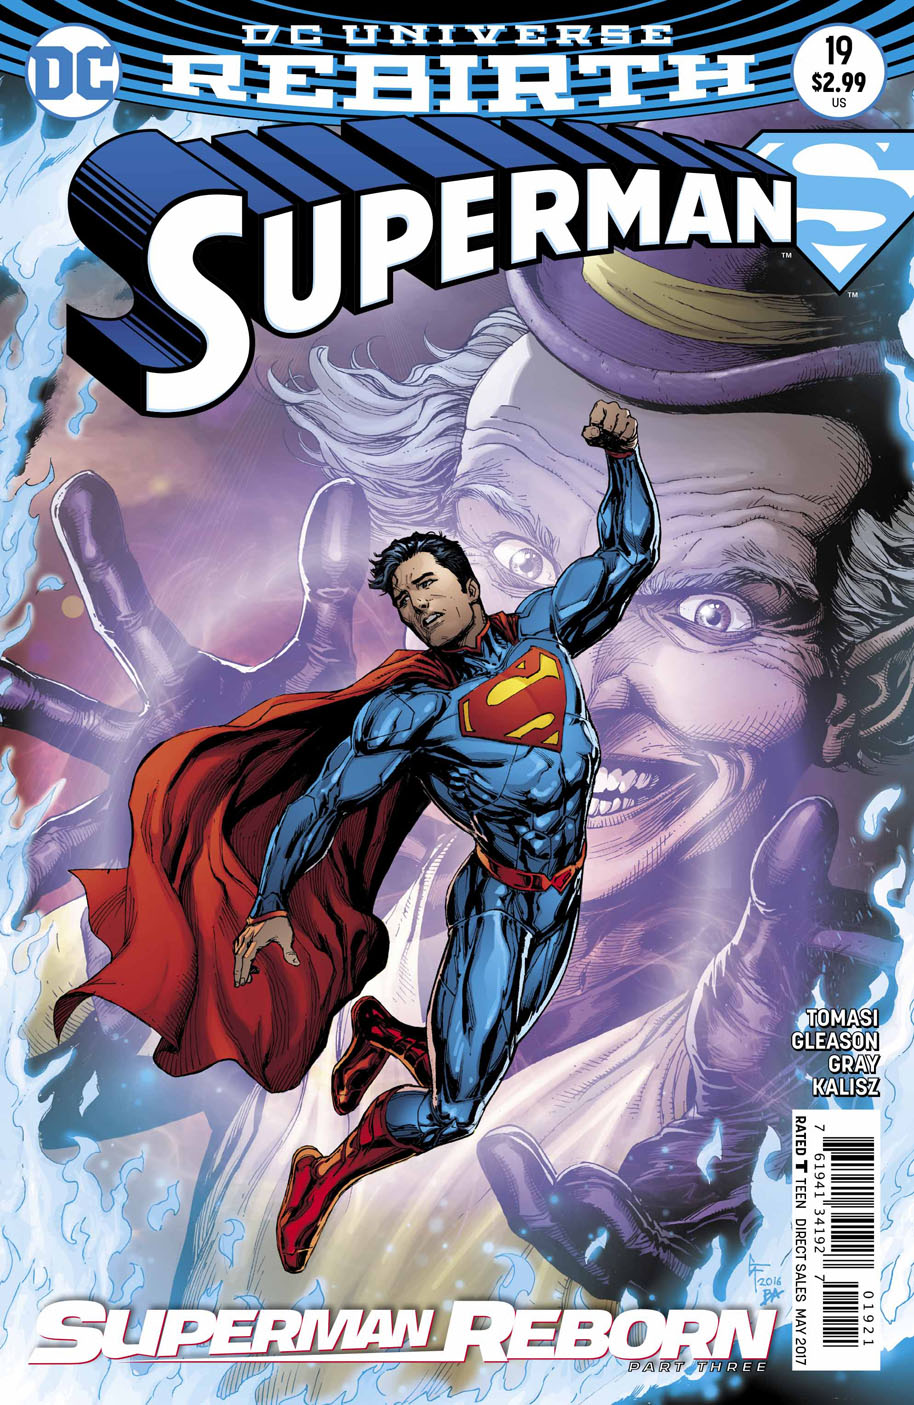 Superman 19 open order variant cover